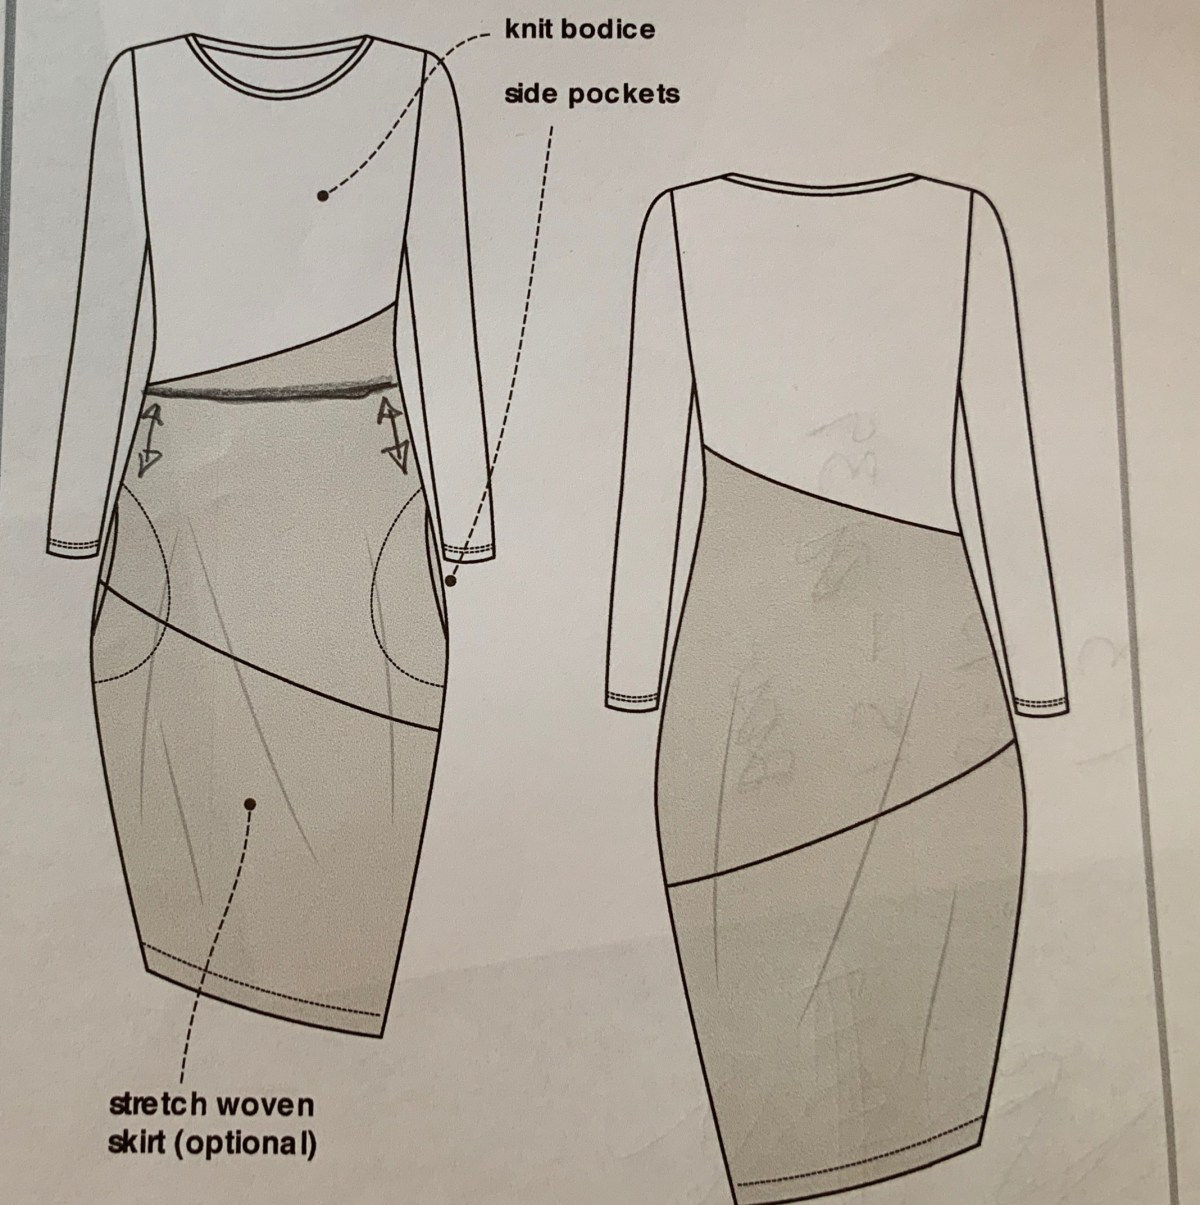 Schematic of dress with fitted top and lantern shaped skirt.